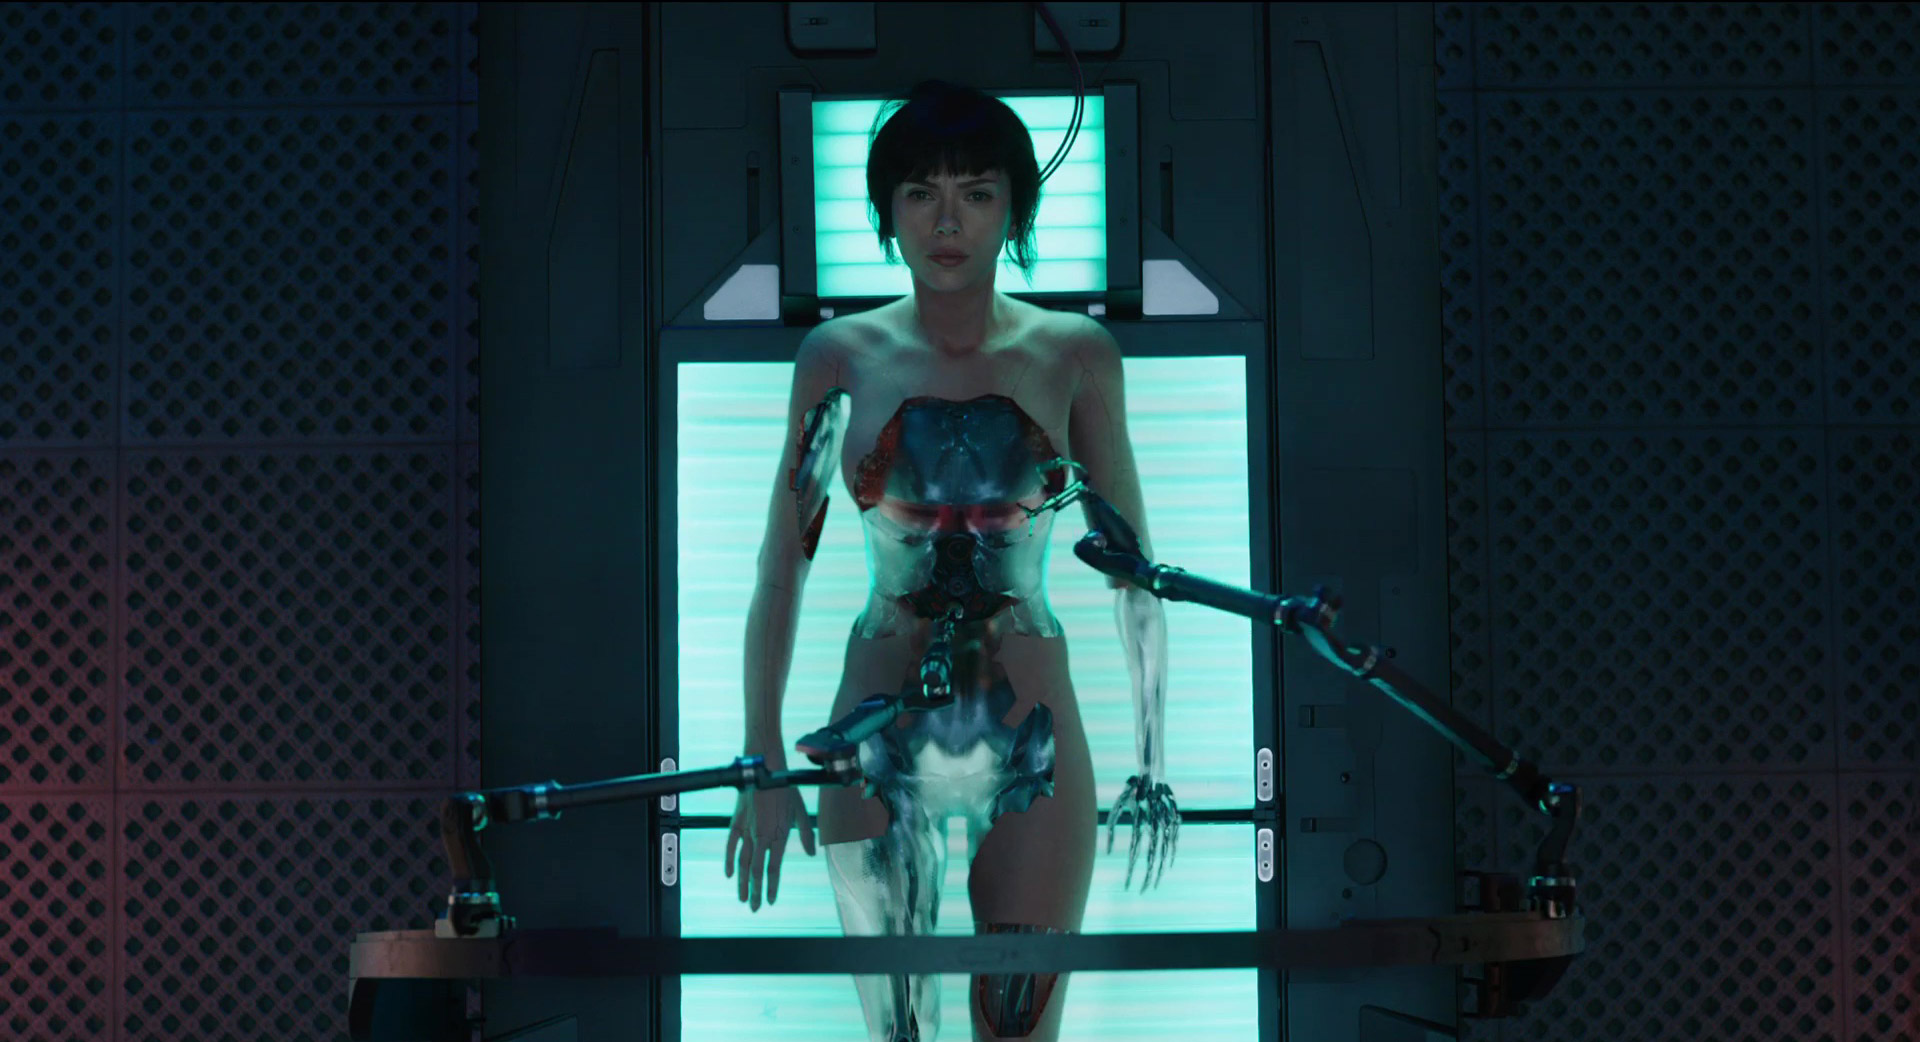 ghost-in-the-shell-movie-scifi-latest-trailer